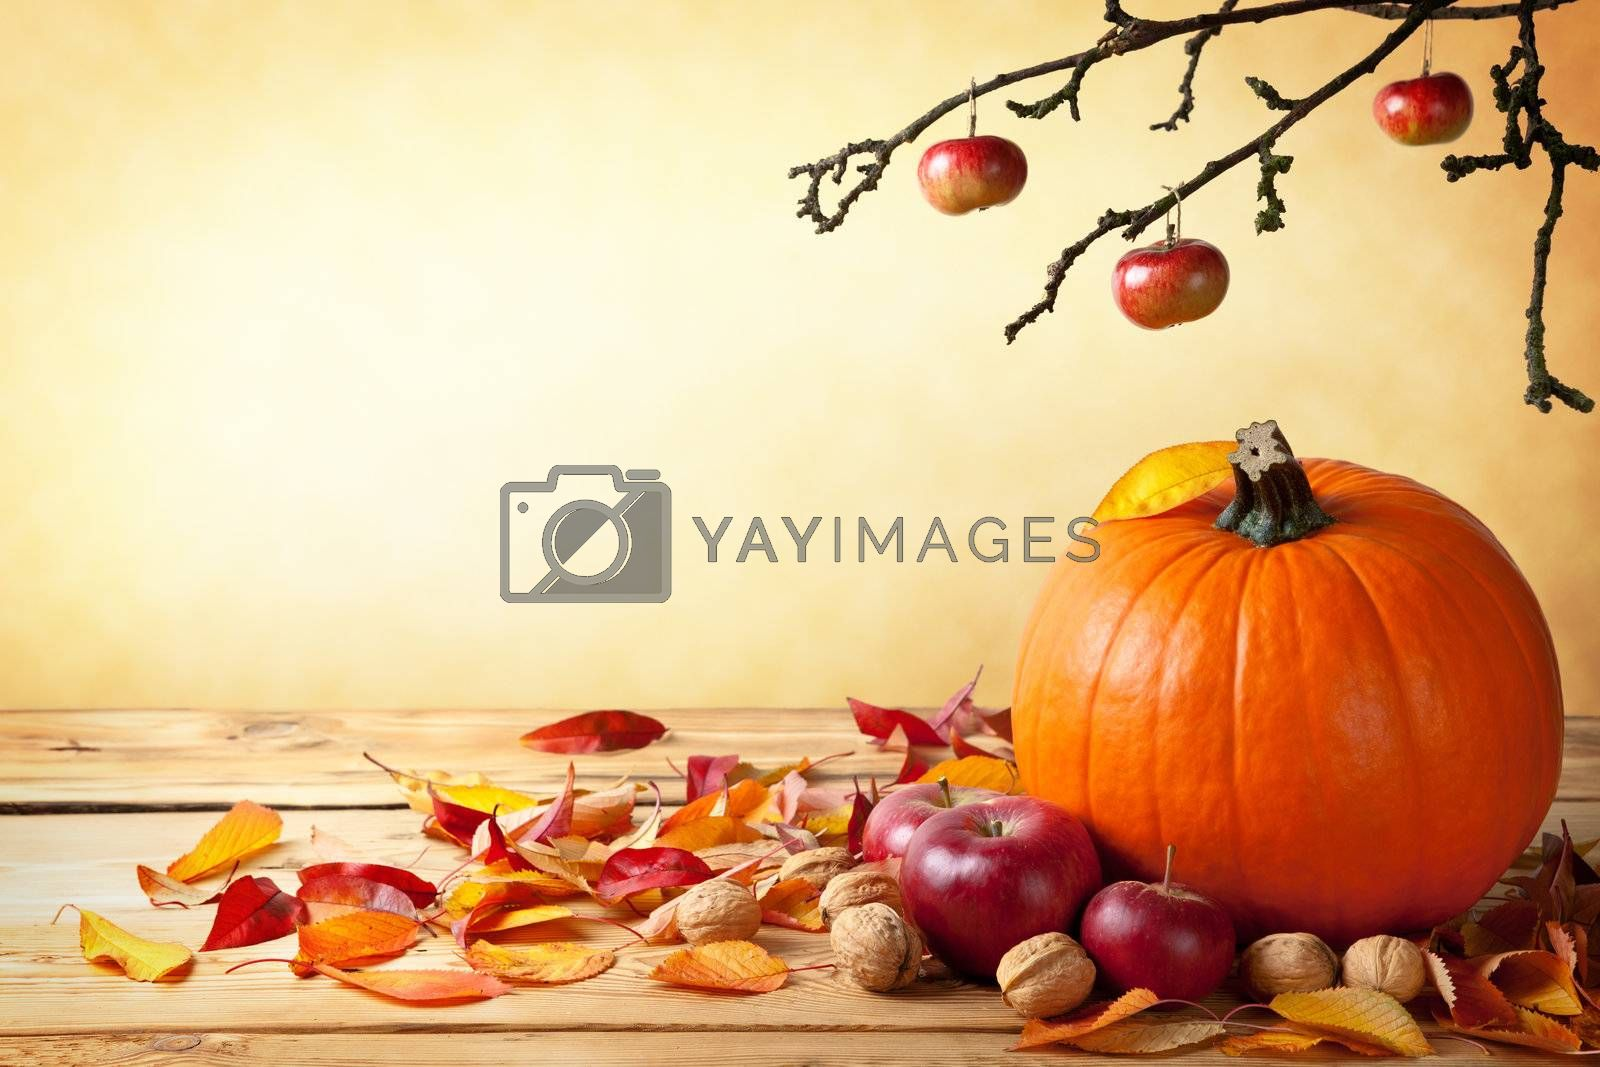 Autumn pumpkin composition on wooden table with copy space